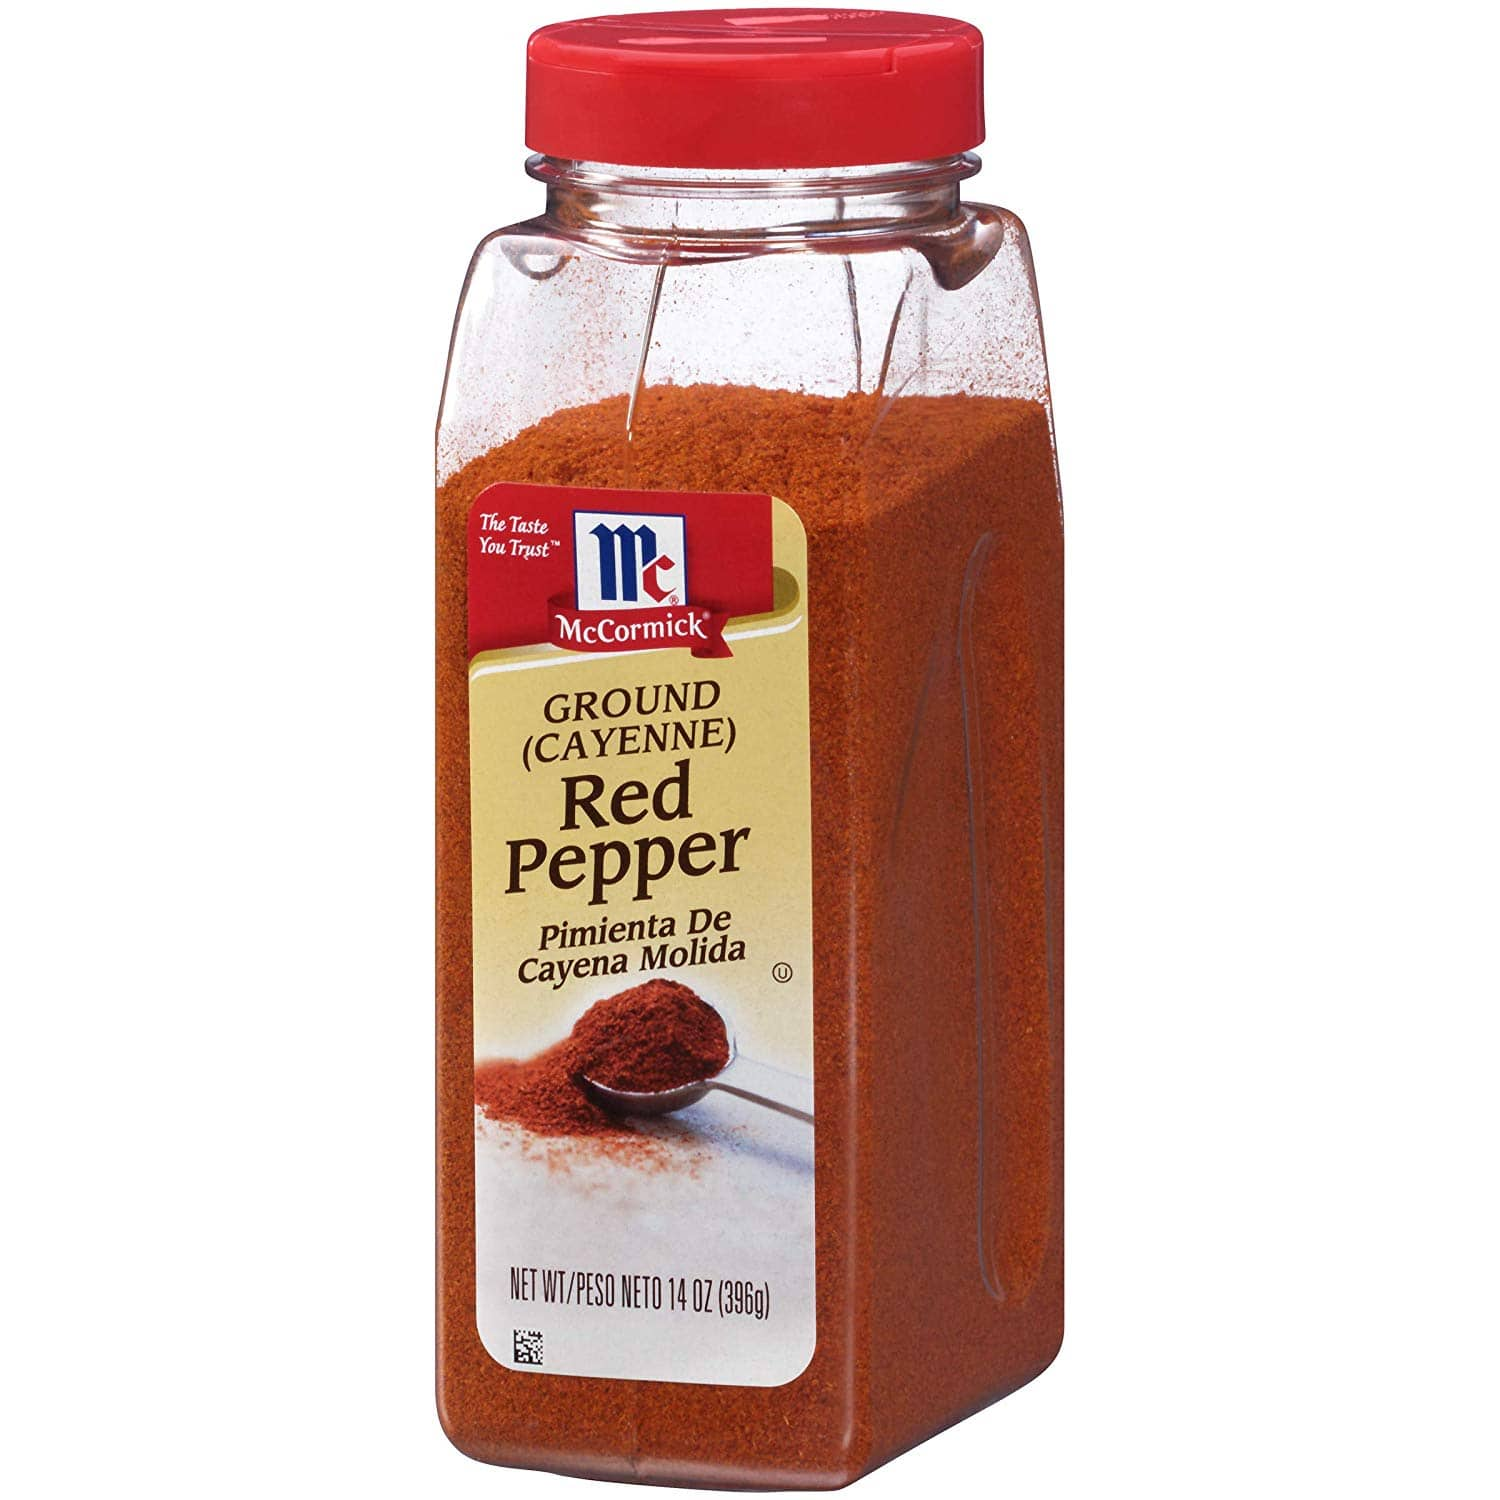 McCormick Cayenne Pepper (Red Pepper Ground), 14 oz  $4.99 or (less with S&S at Amazon  FS)